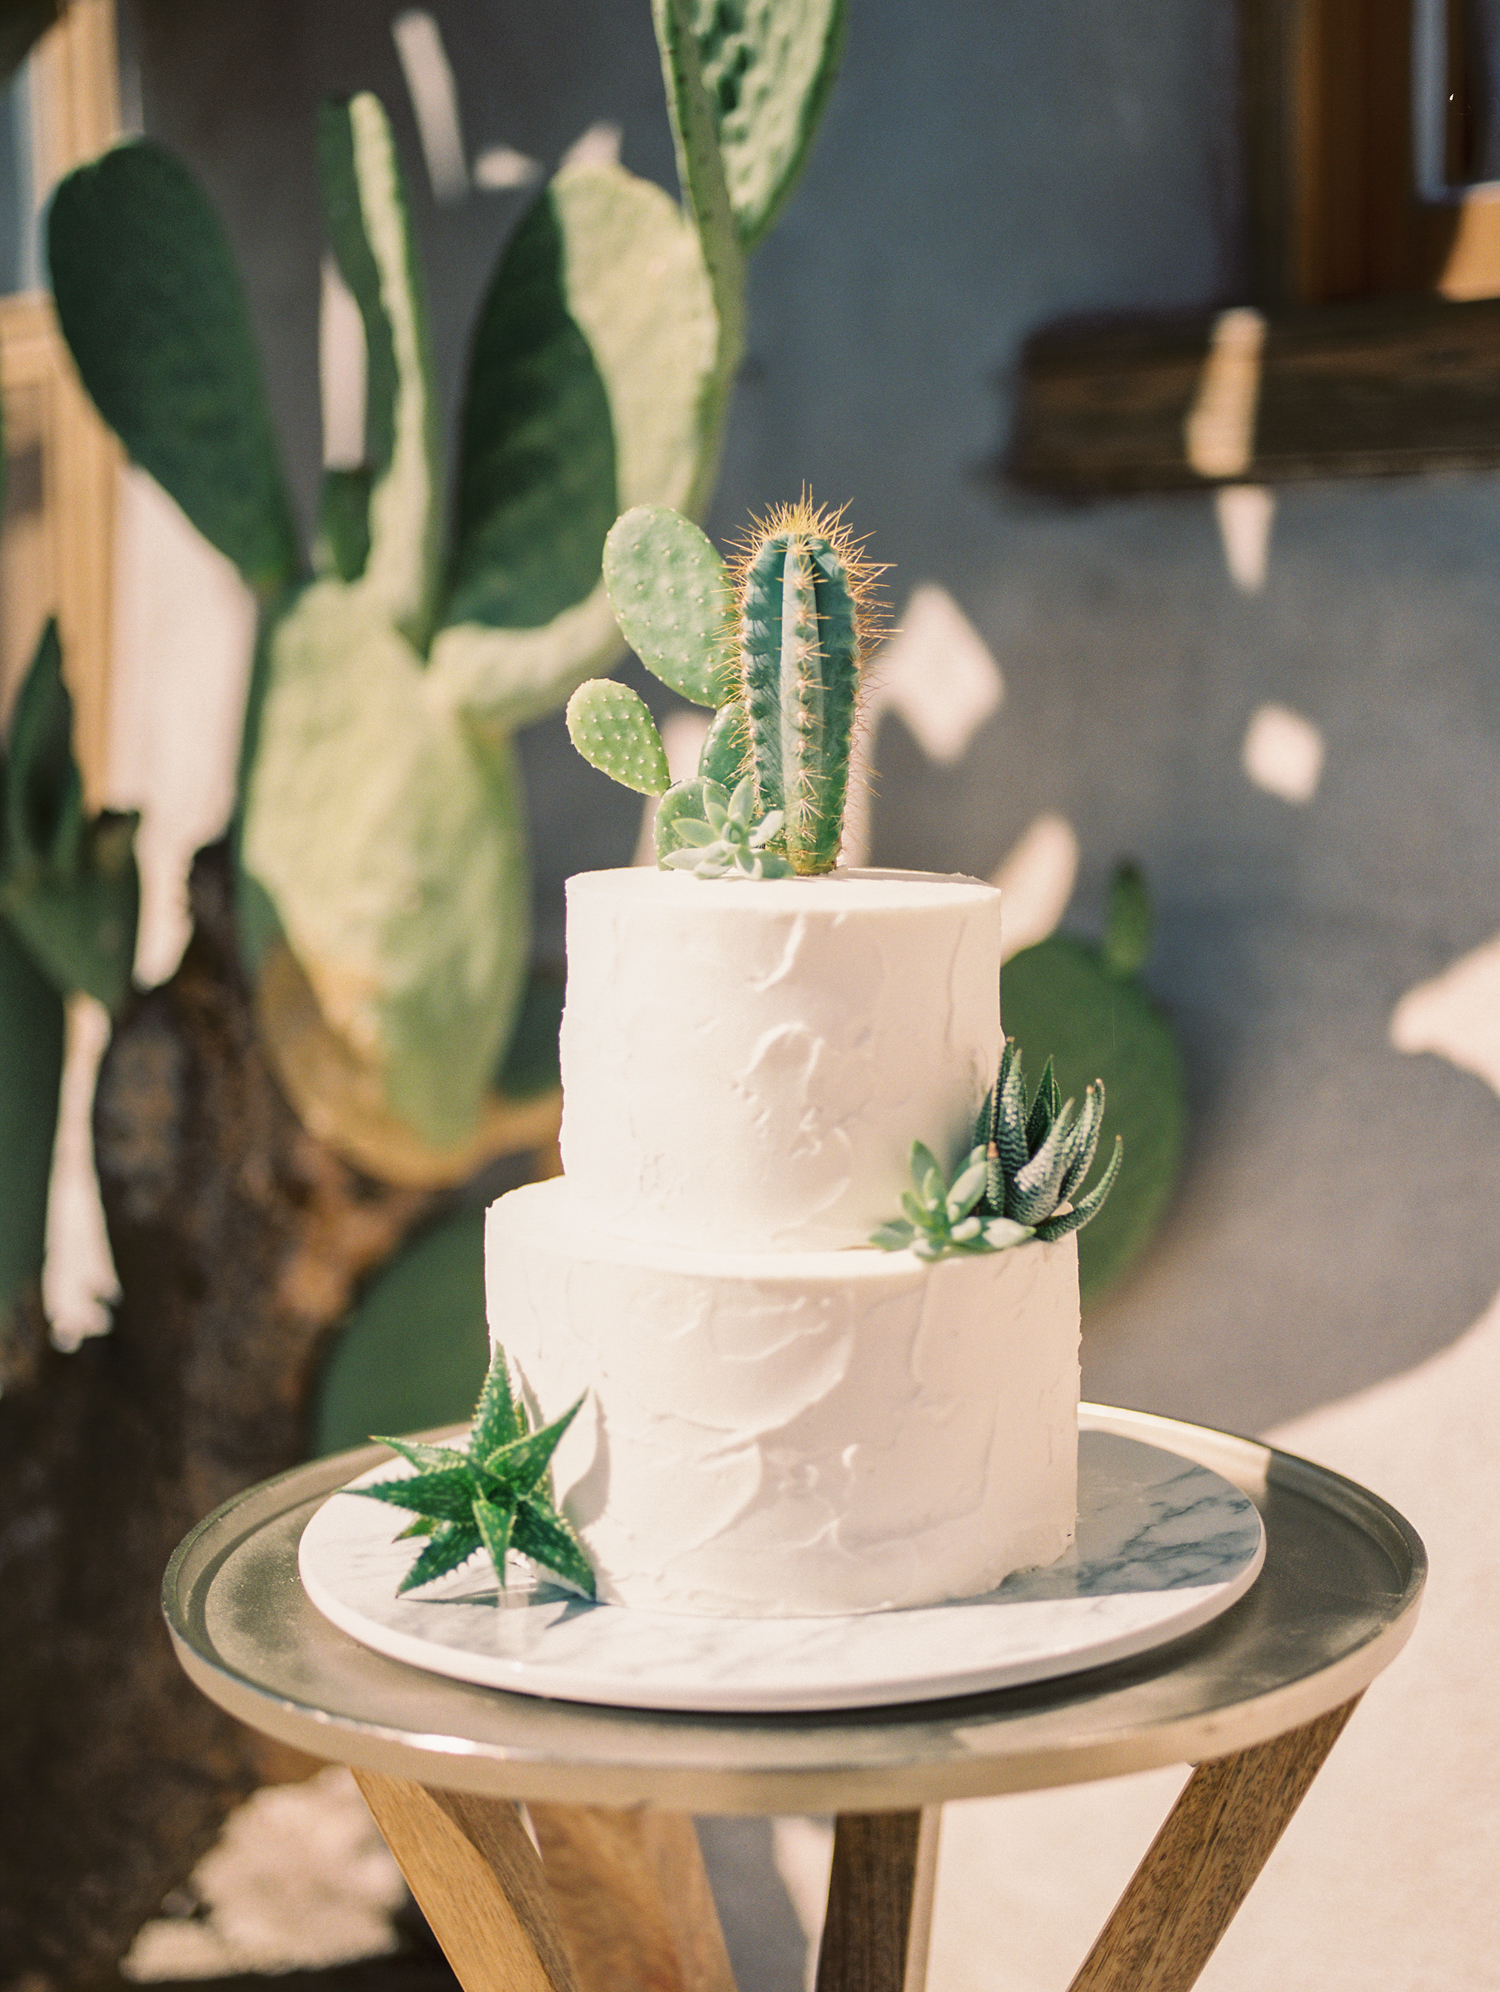 No desert wedding is complete with out a desert cake! Real cactus & succulent cake toppers